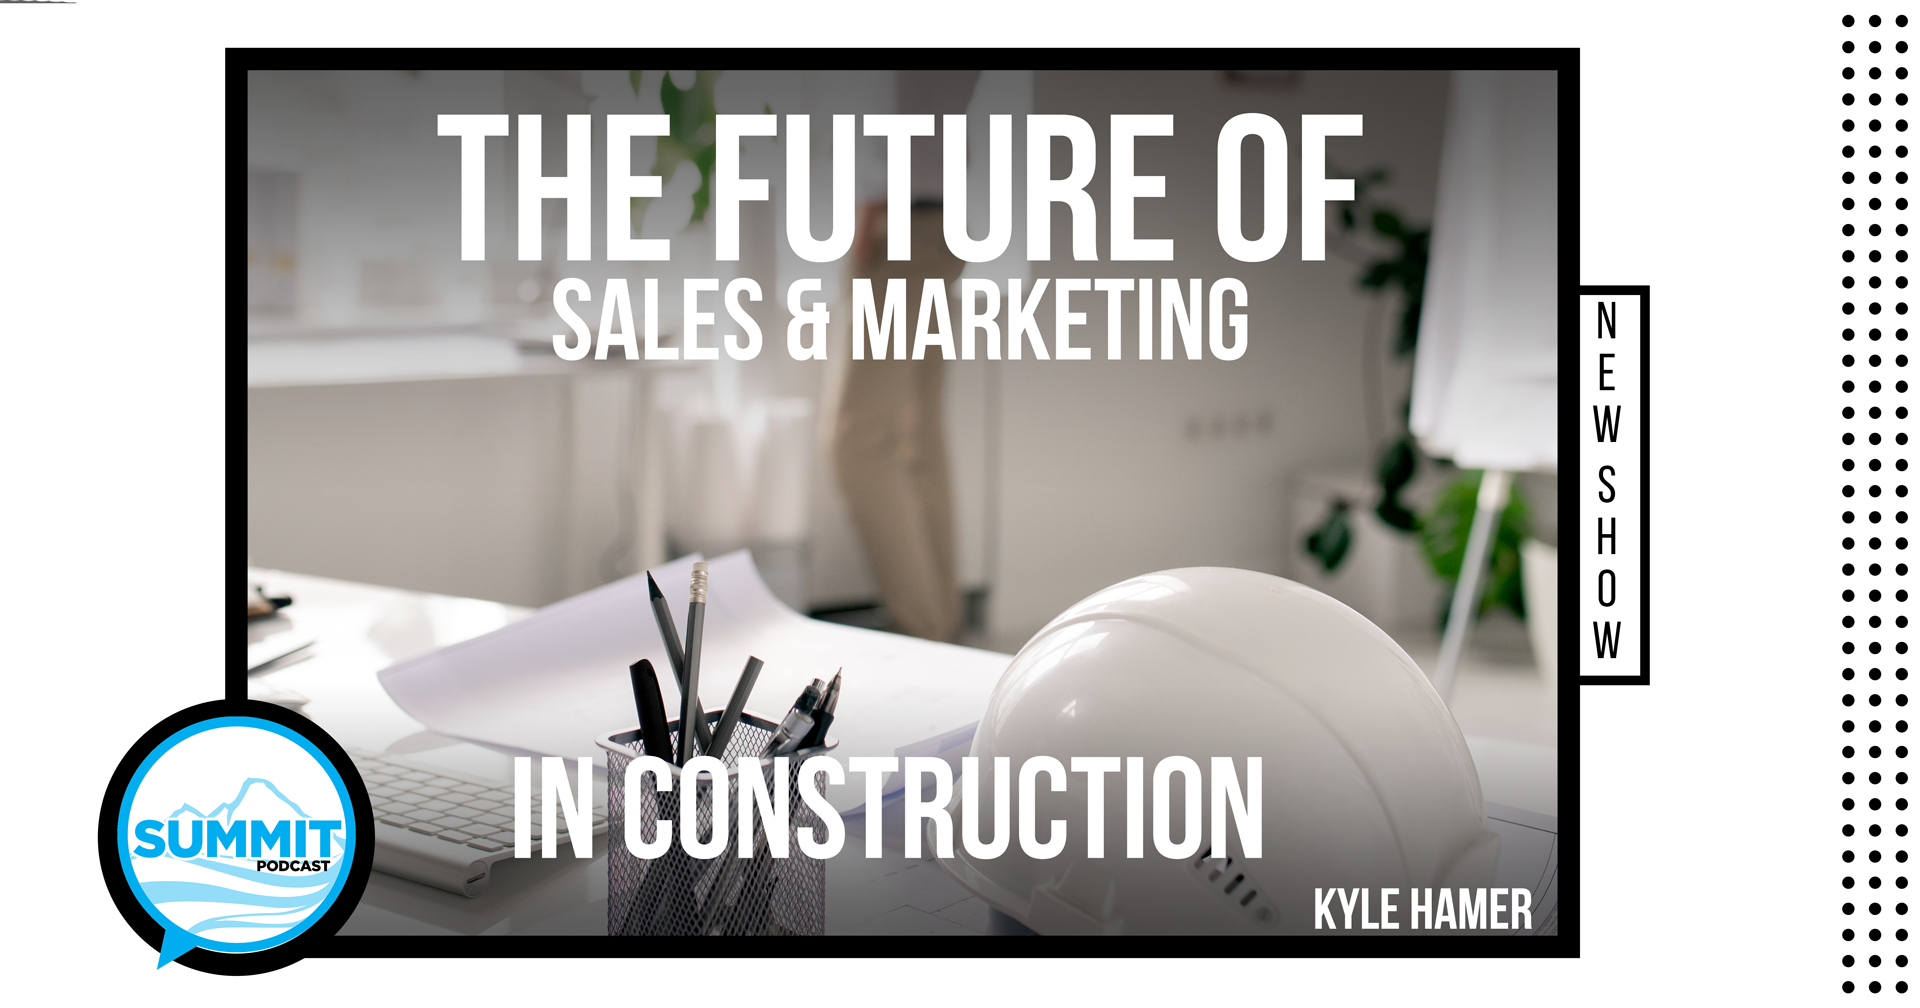 sales and marketing in construction - what's the future look like?